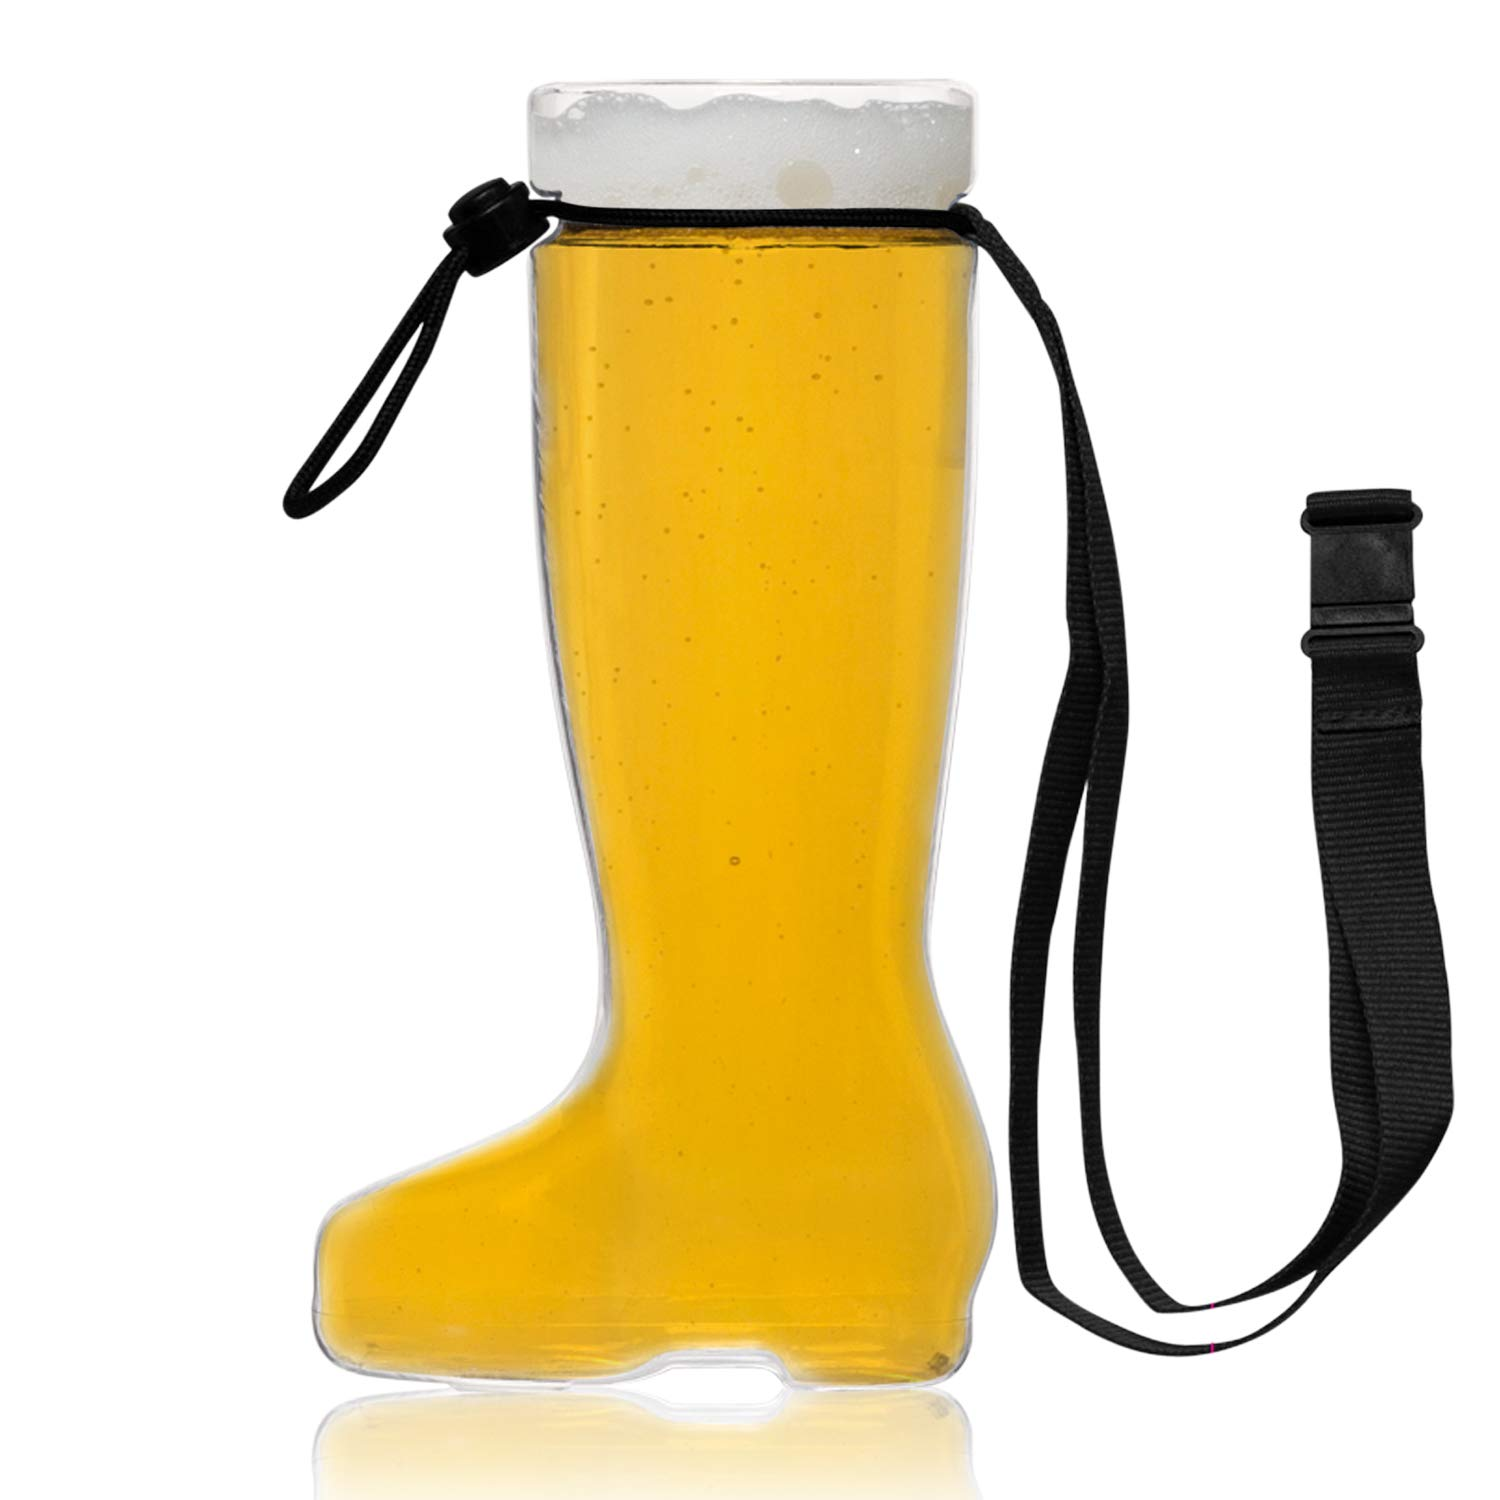 Unbreakable 1L Oktoberfest German Beer Boot Stein with Lanyard (44 oz.)- Das Boot- Large Plastic Beerfest Beer Glass- Made in USA